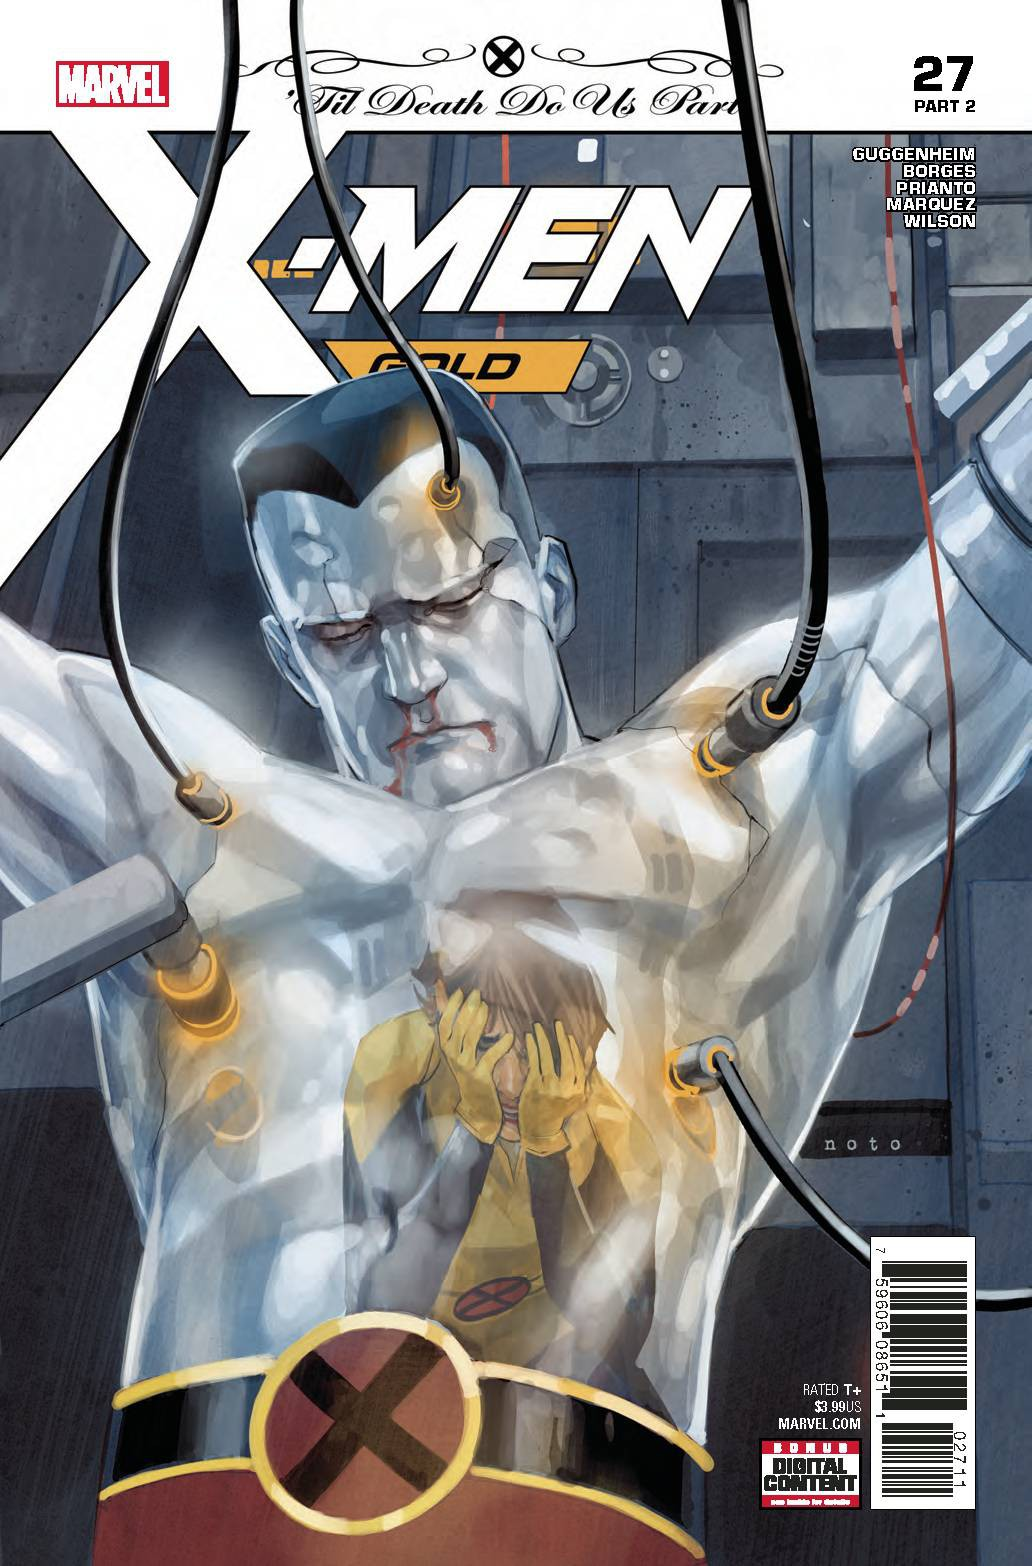 Marvel X-Men Gold #27 by